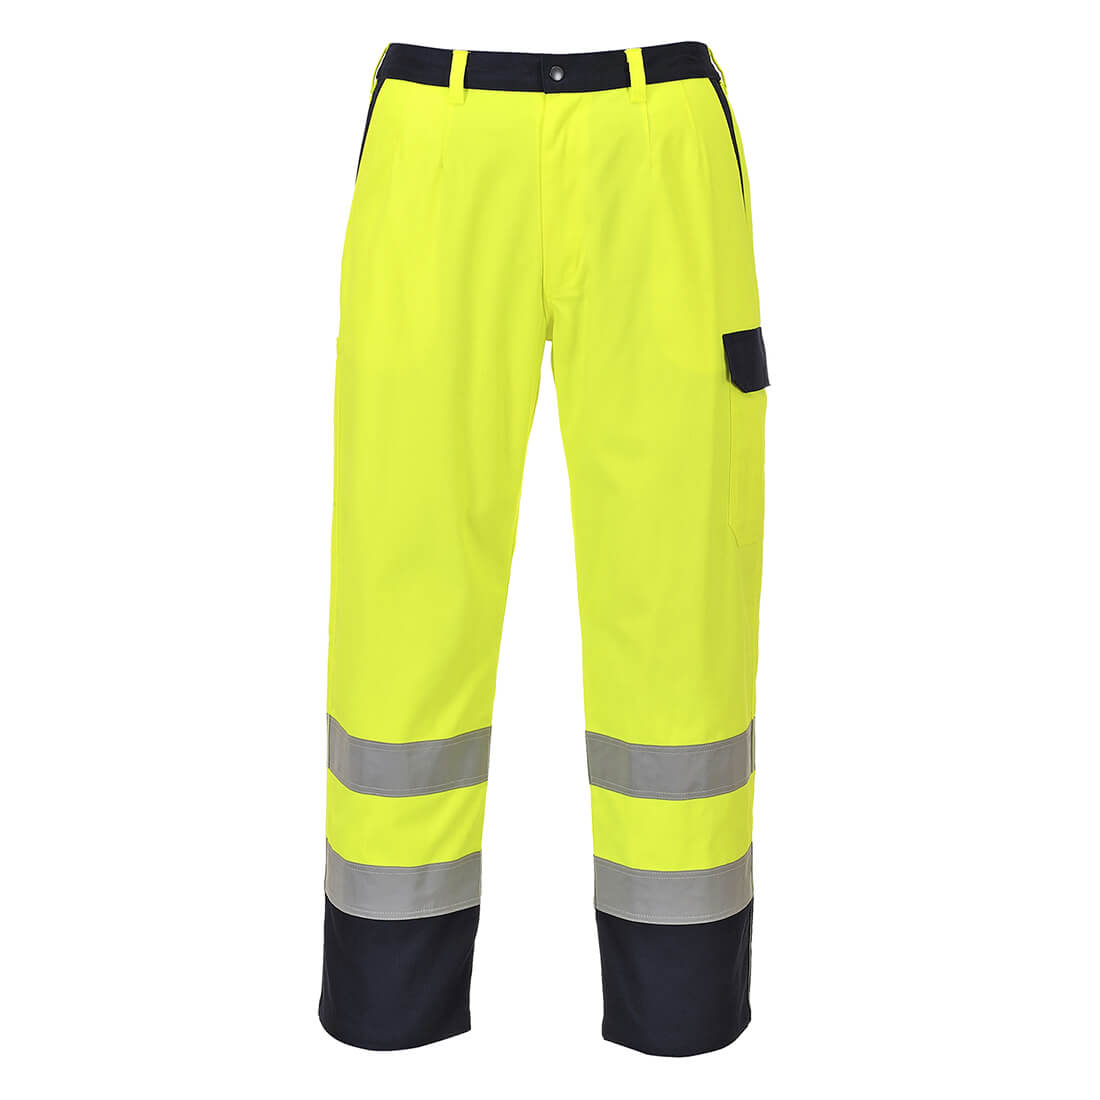 Image of Biz Flame Pro Mens Flame Resistant Trousers Yellow 2XL